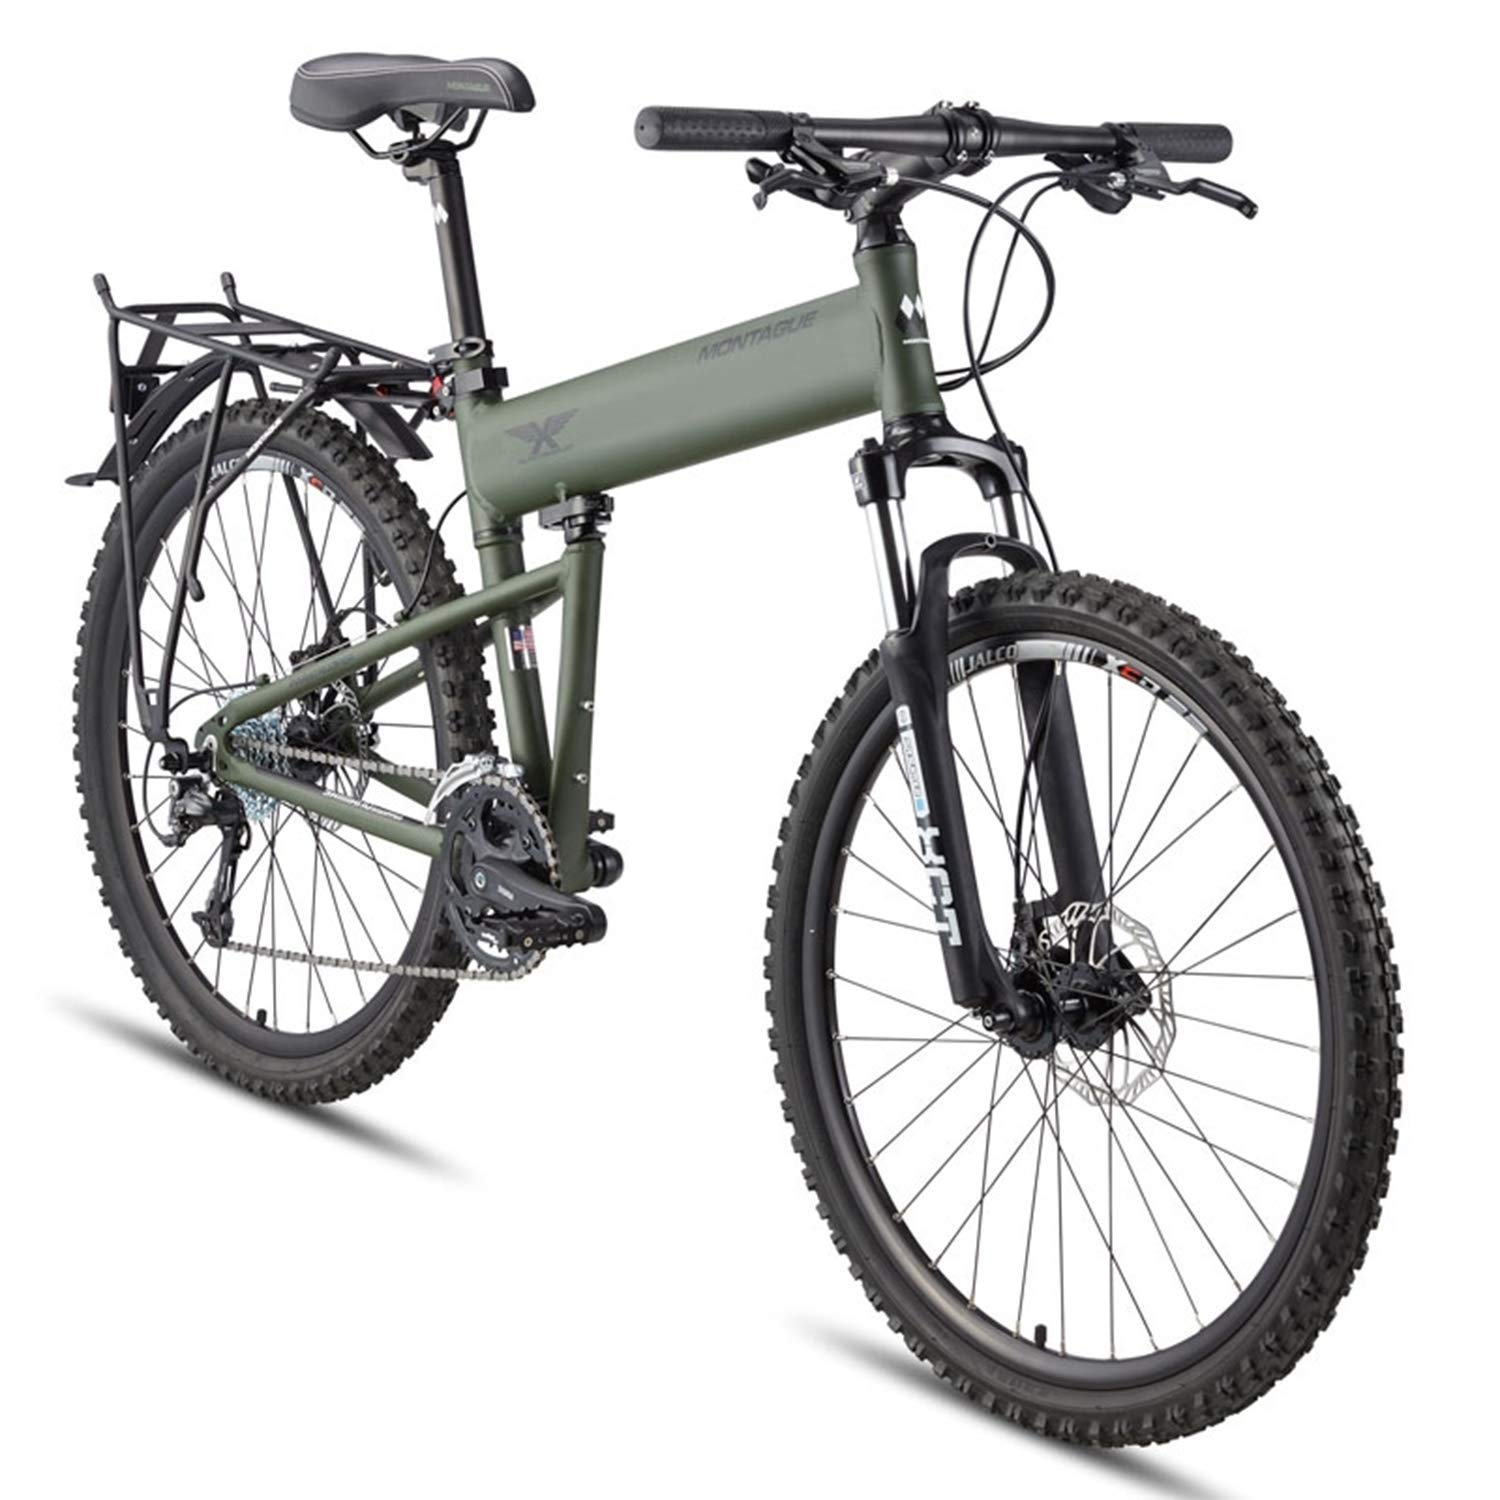 9e37a2d89ab Montague Paratrooper 24 Speed Folding Mountain Bike | Team Immortal |  Forever Fit | Fitness Products